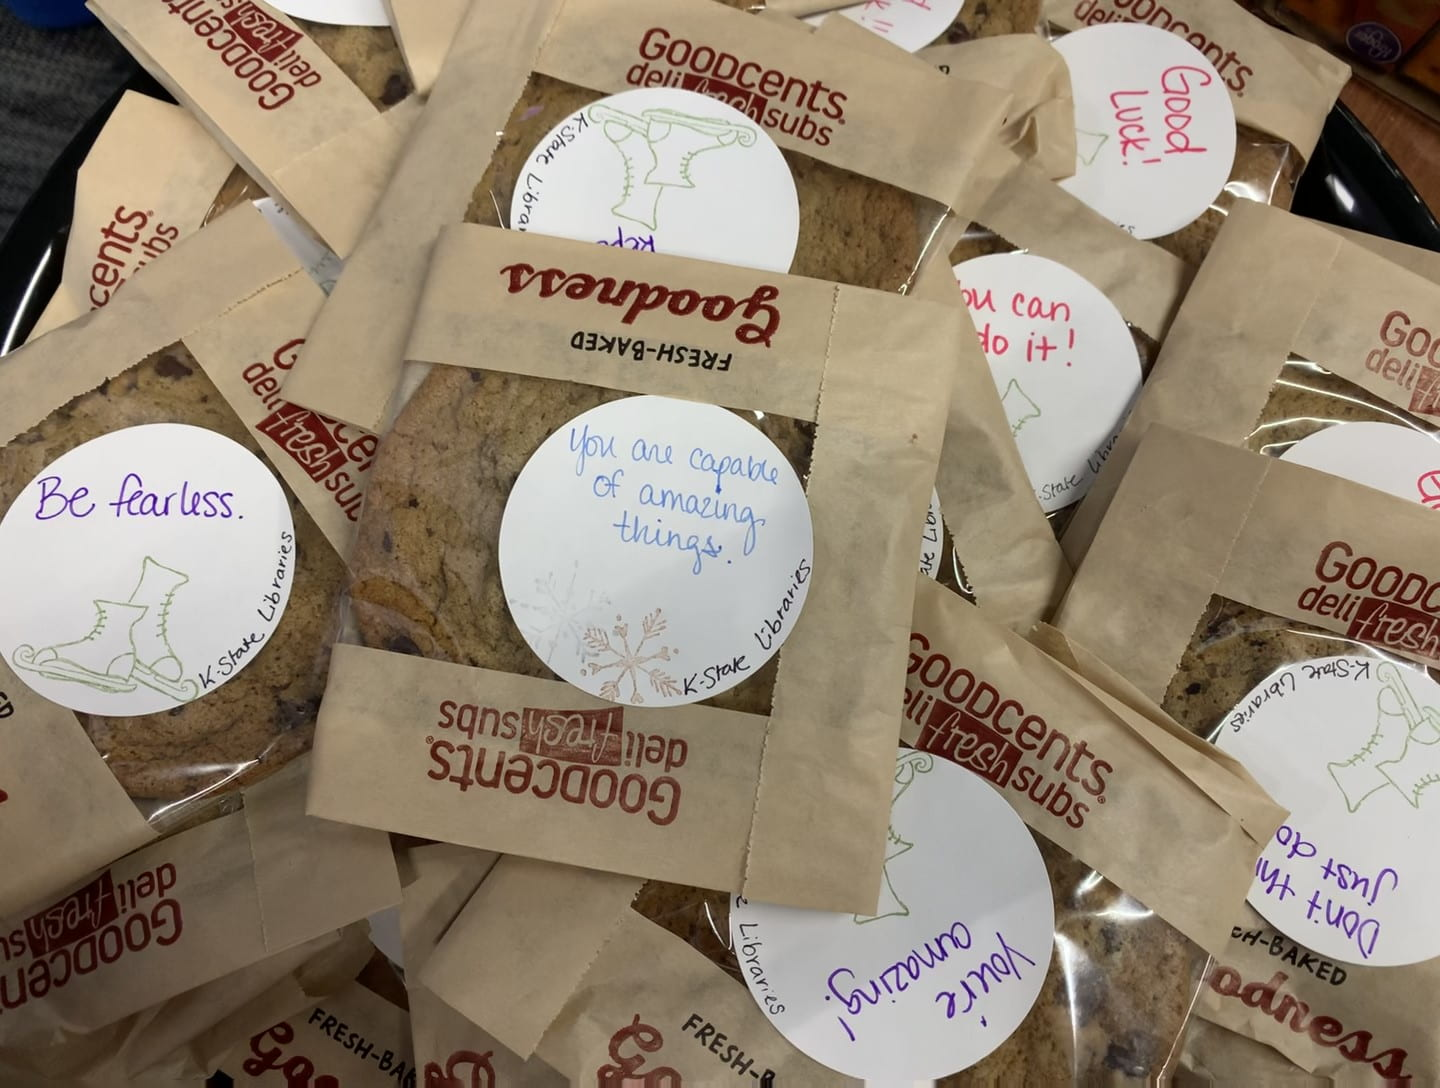 A pile of cookies with various encouraging phrases written on their wrappers.